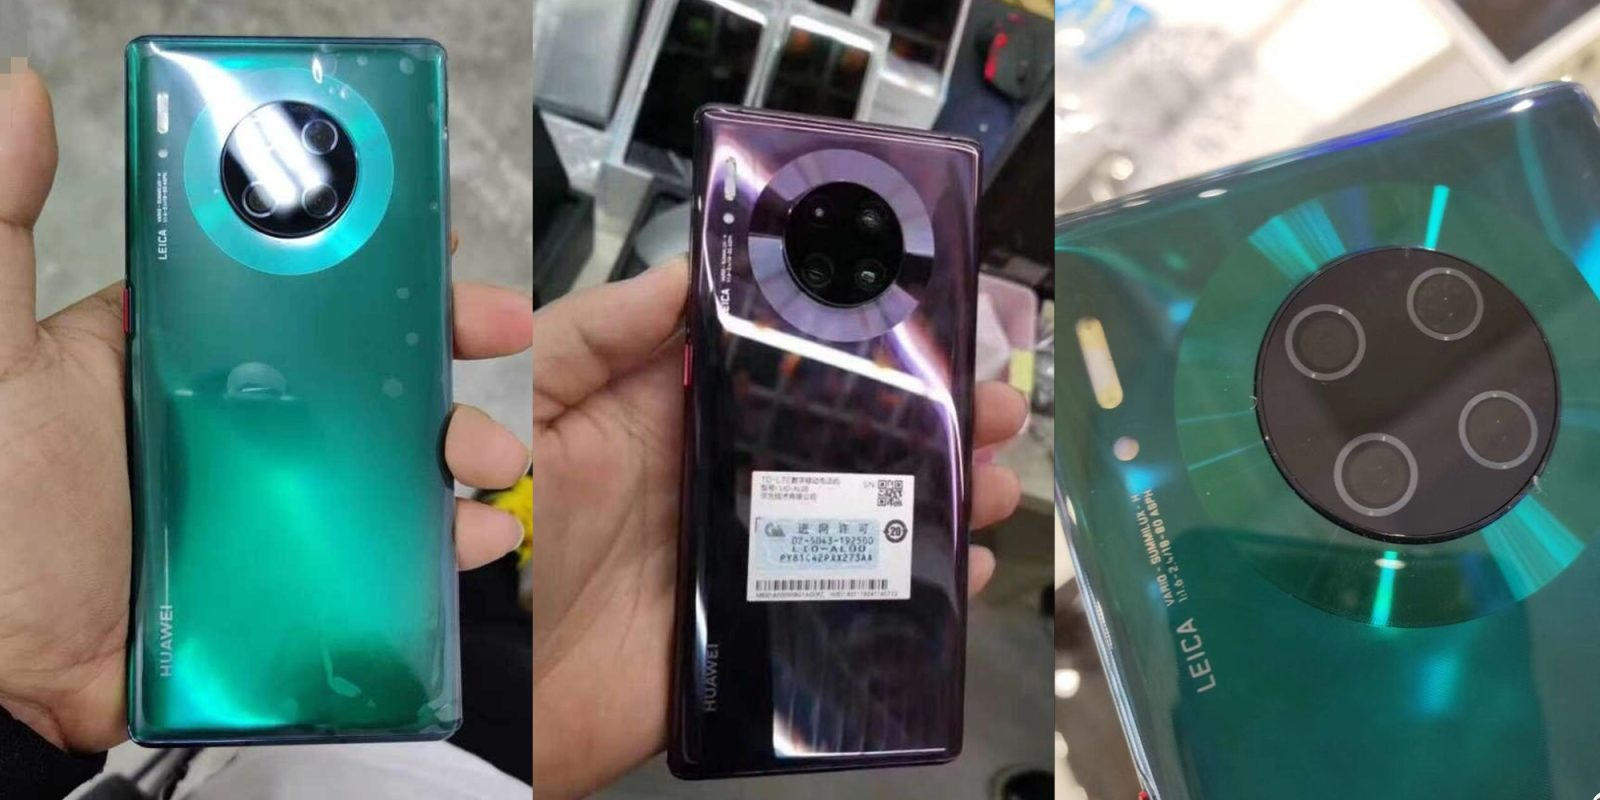 [Update: Video unboxing] Hands-on images of Huawei Mate 30 Pro, Watch GT 2 leak showing new designs